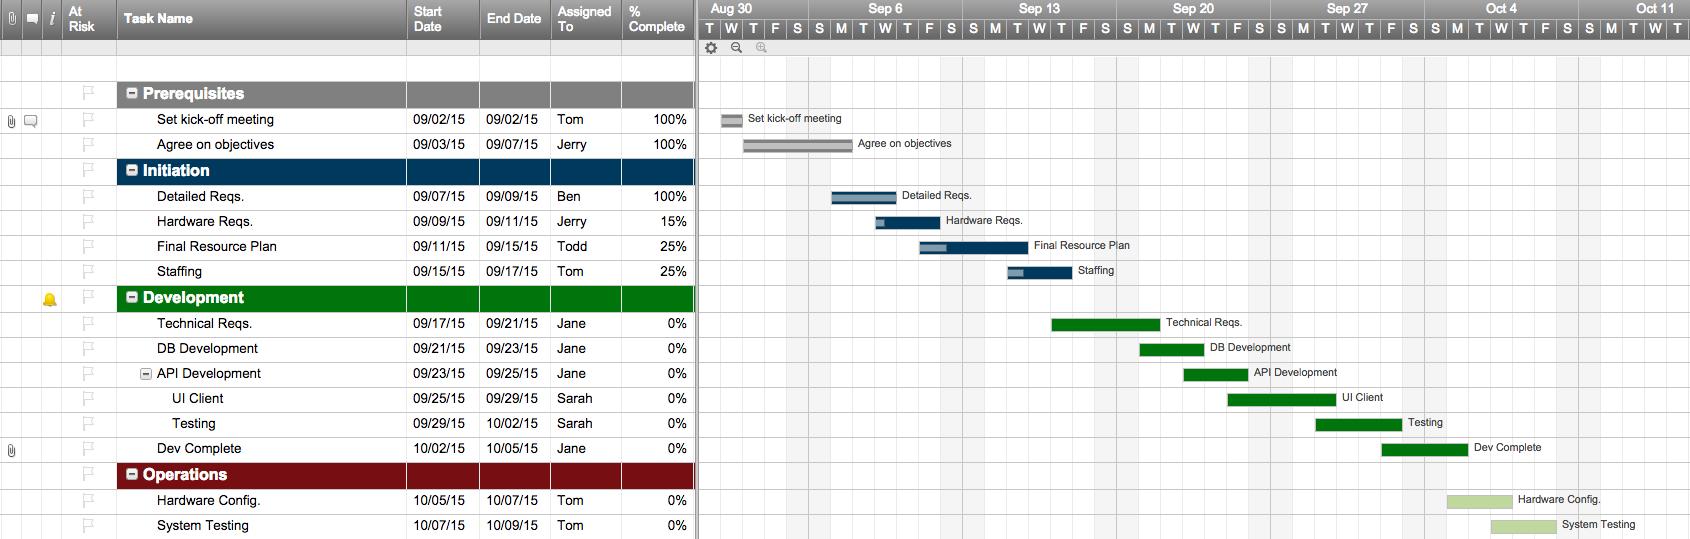 Construction Schedule Spreadsheet Within Top Project Plan Templates For Excel  Smartsheet